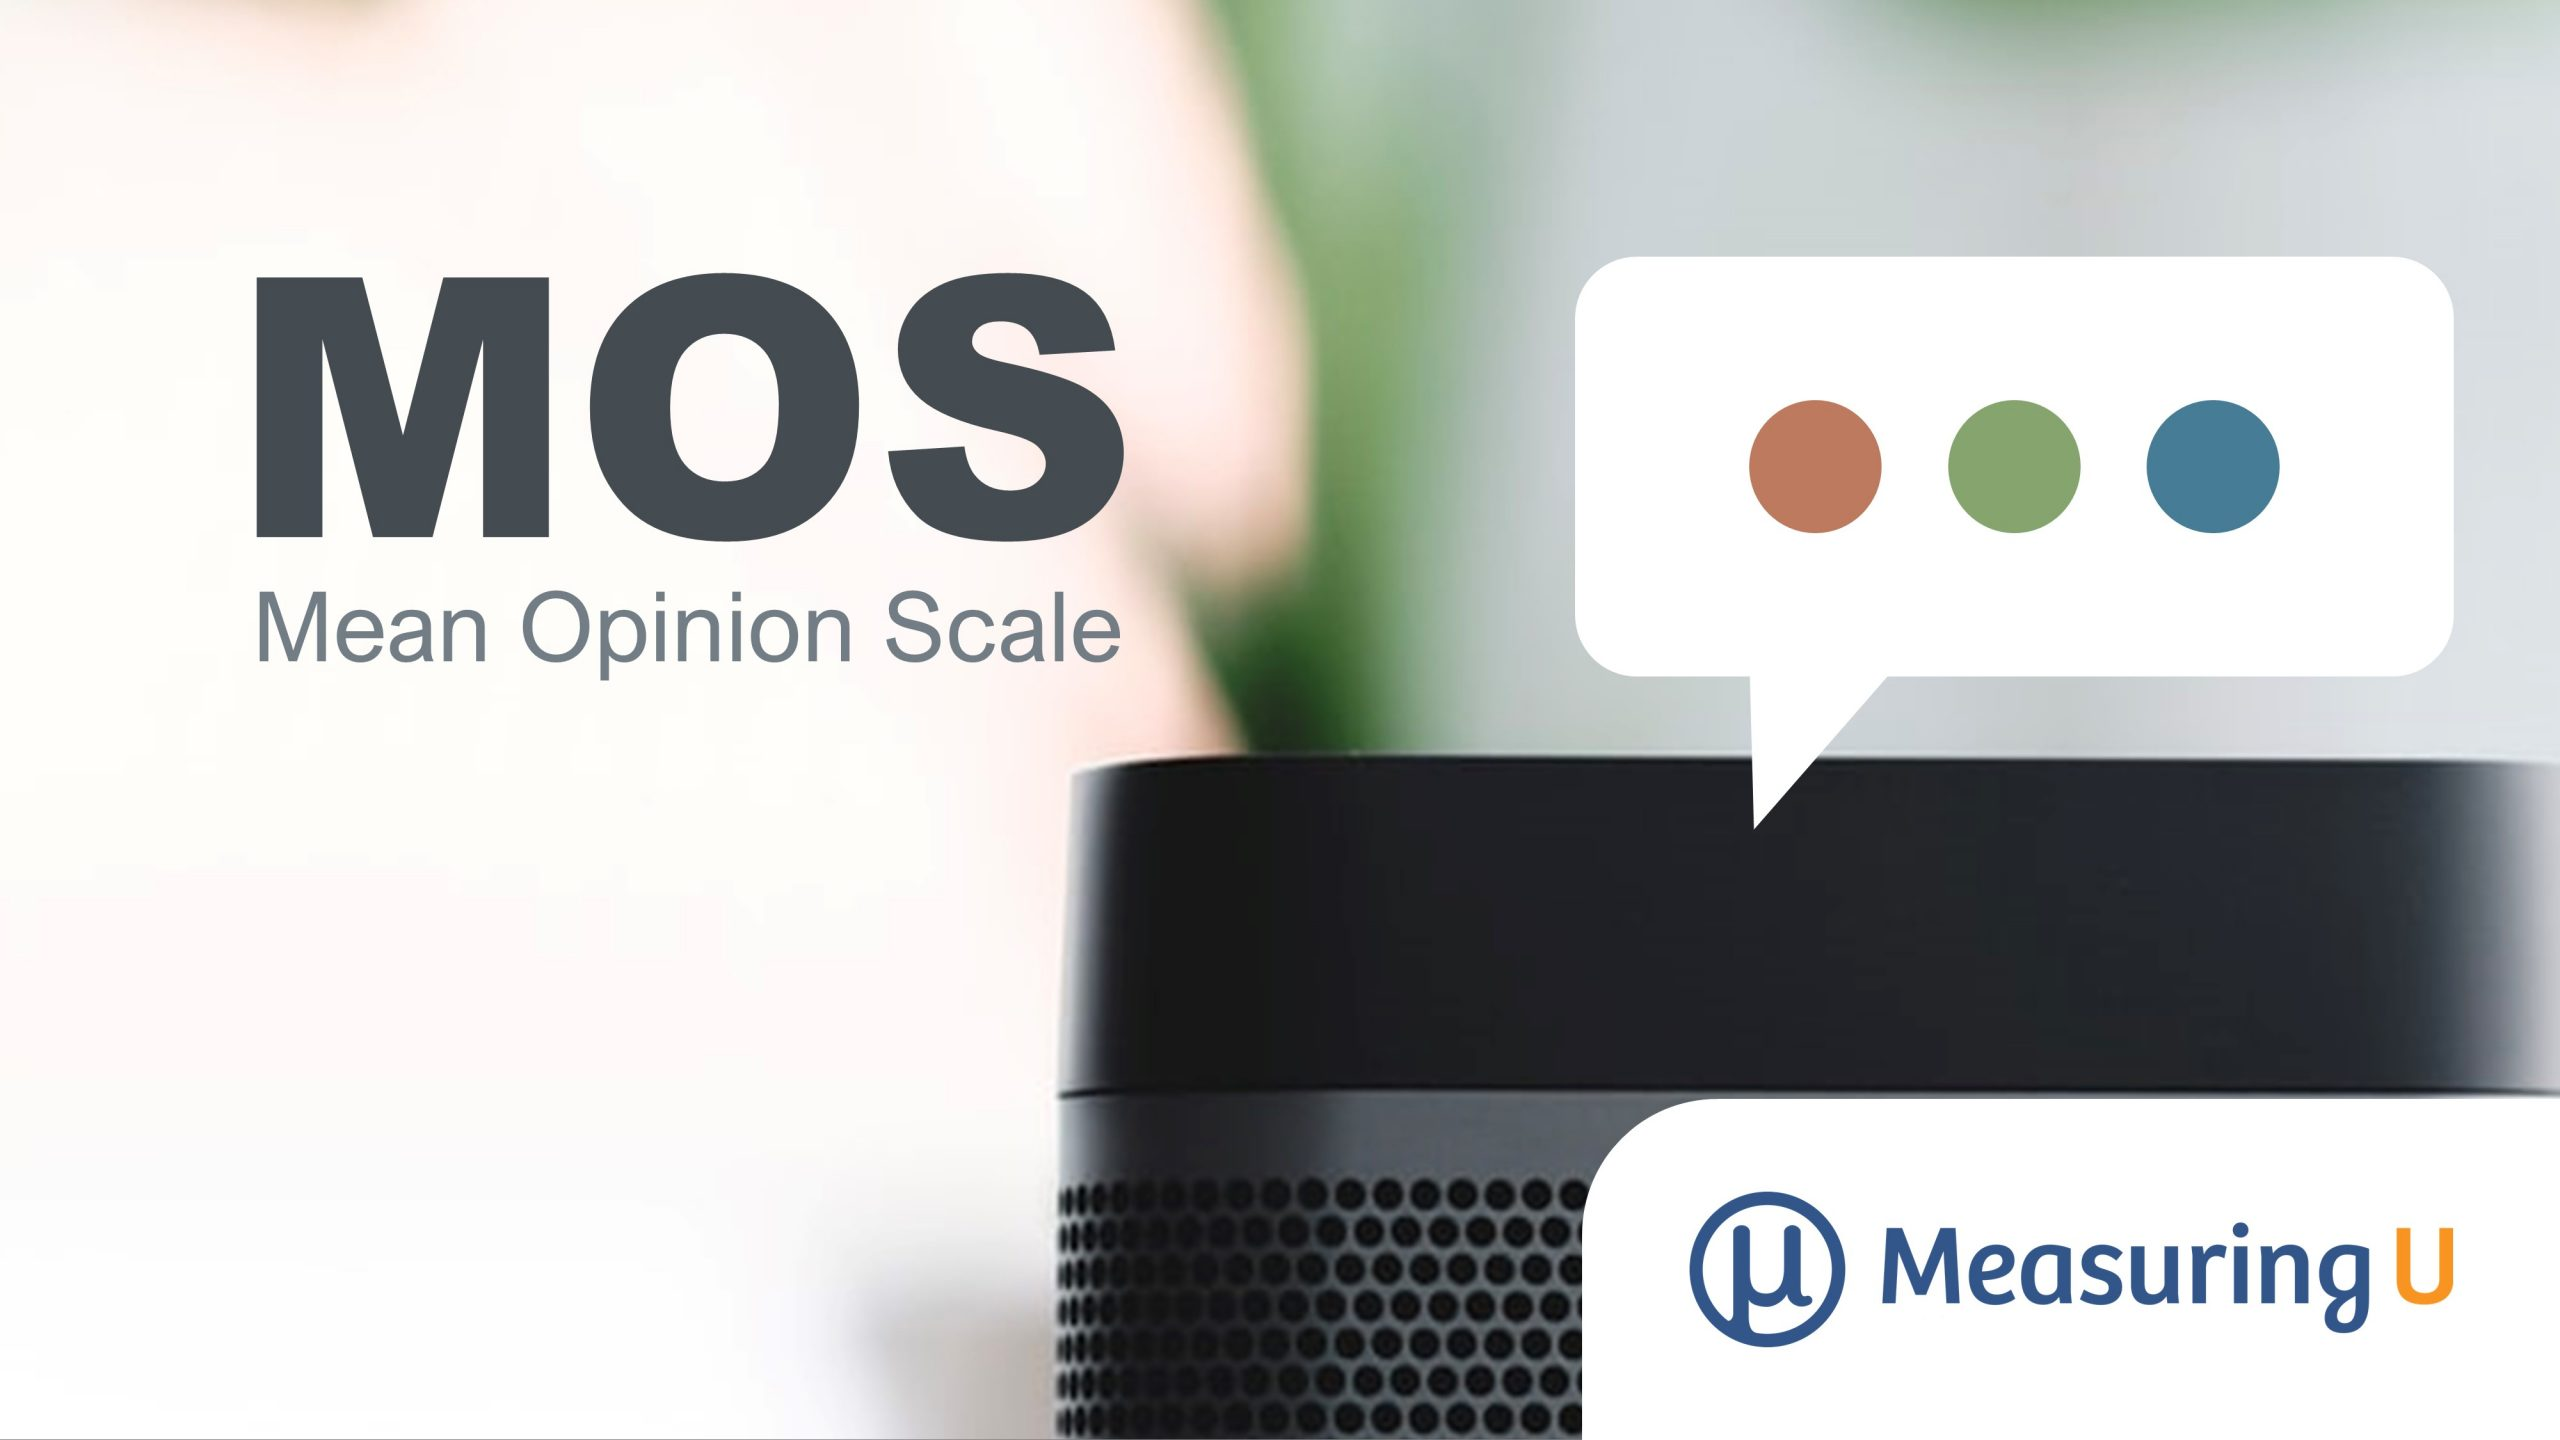 What Is the Mean Opinion Scale (MOS)?